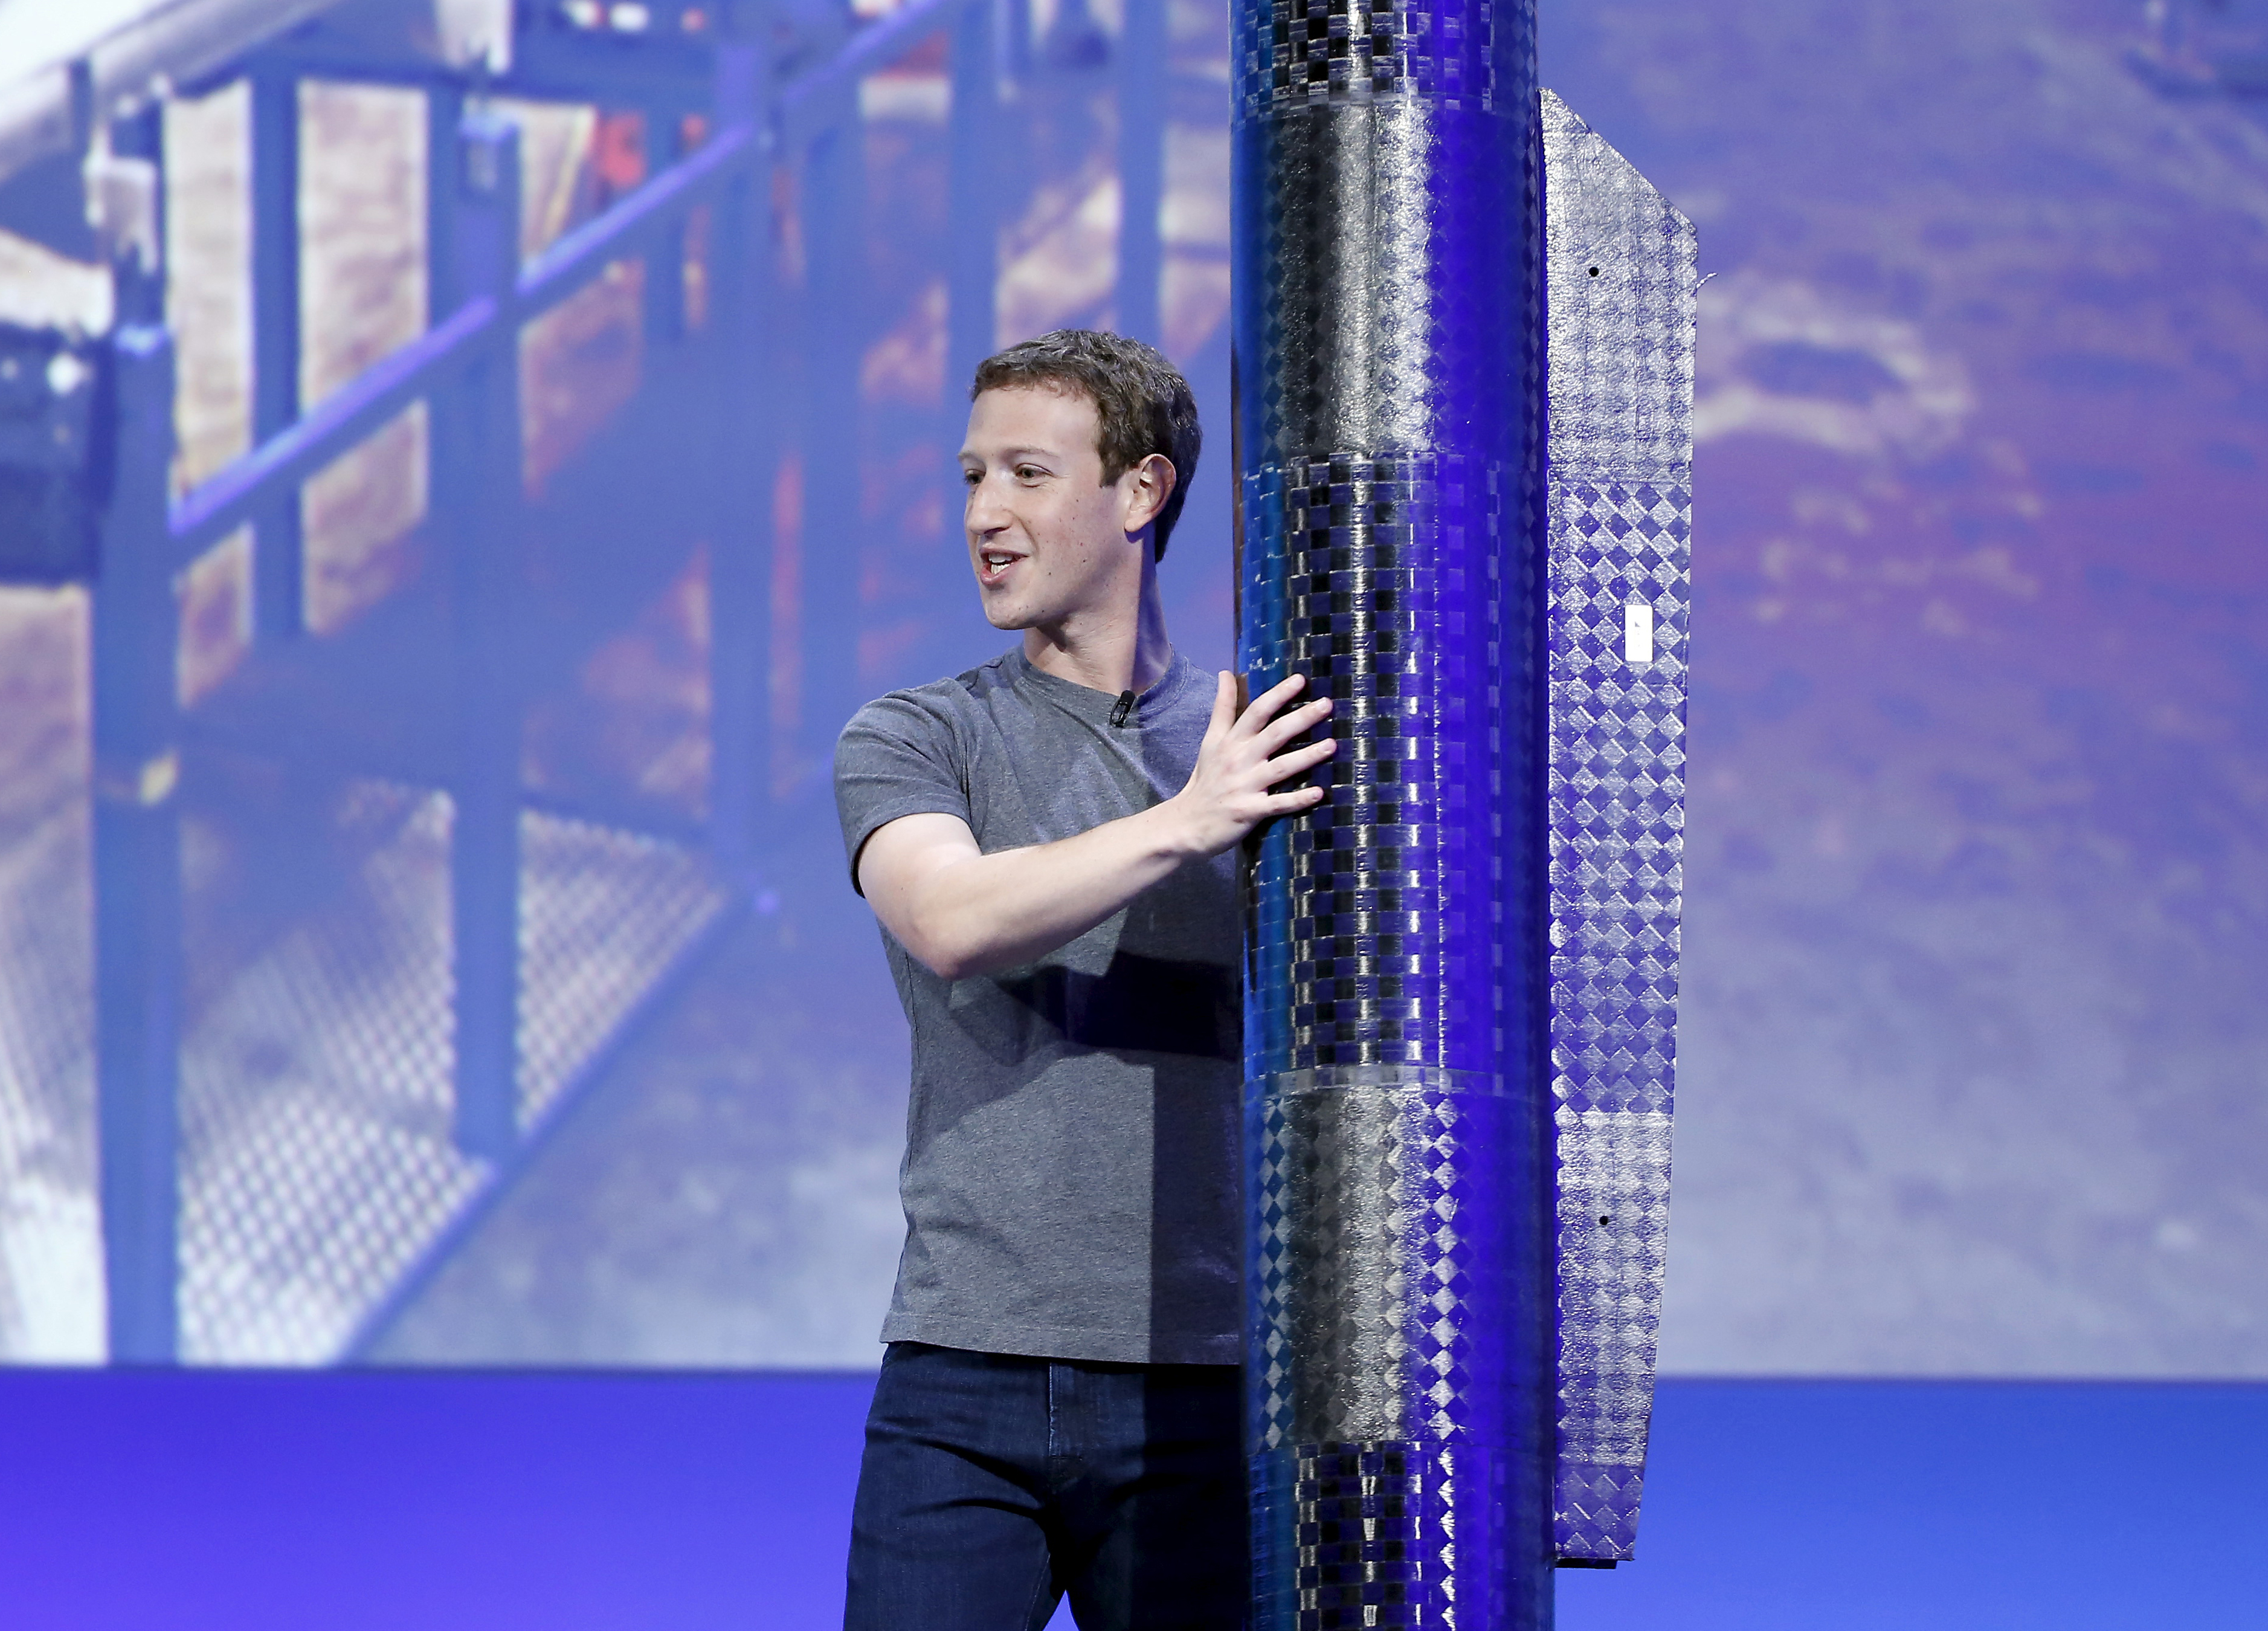 File photo of Facebook CEO Mark Zuckerberg holding  a propeller pod of the solar-powered Aquila drone during the Facebook F8 conference in San Francisco, California